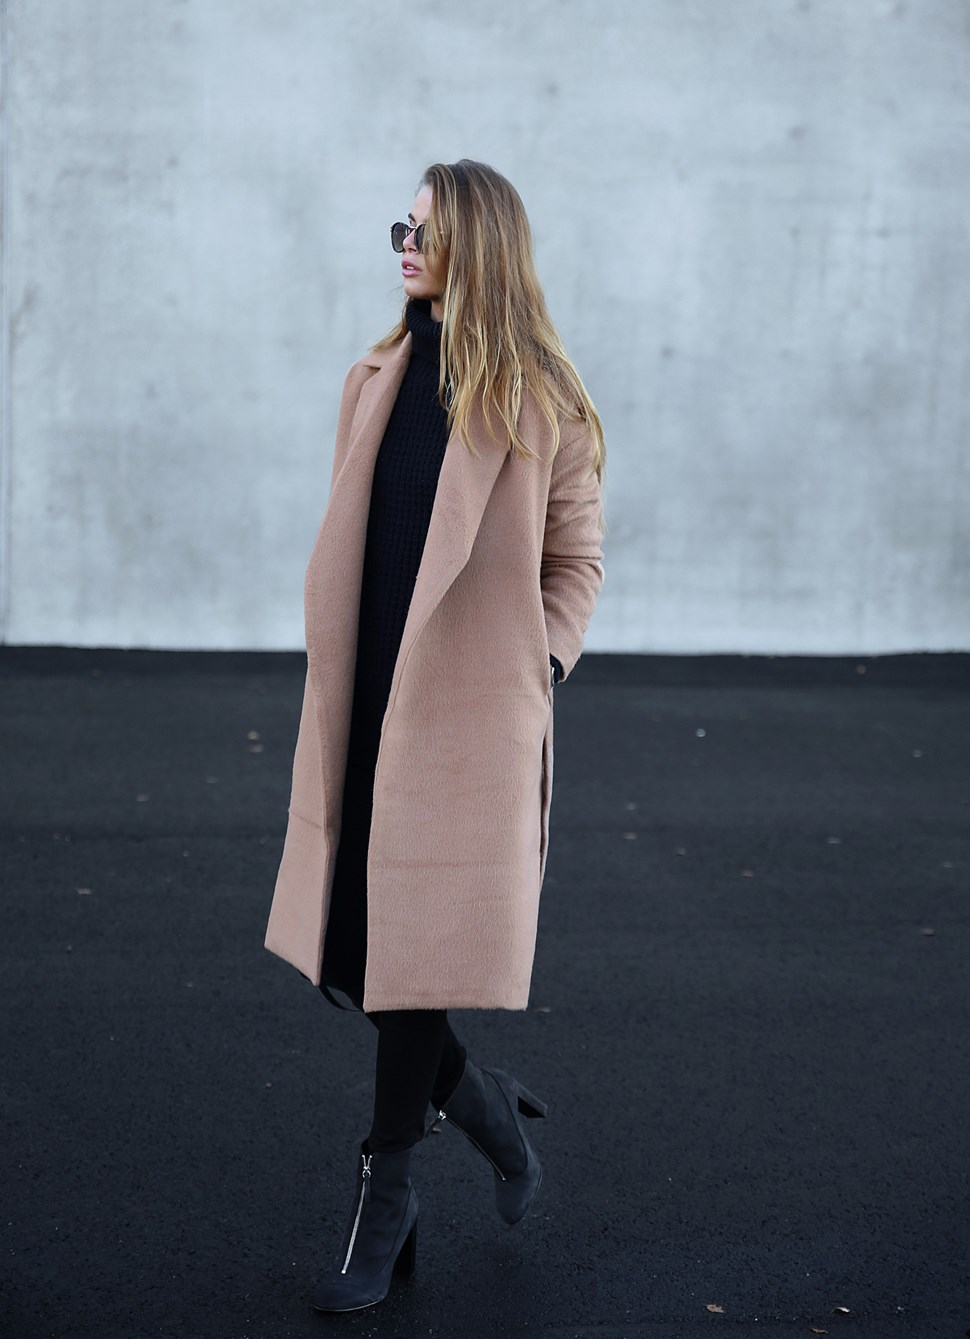 Josefin Ekström breaks up an all black outfit with a gorgeous neutral coloured coat from Bubbleroom. Coat: Bubbleroom, Shoes: Henry Kole.